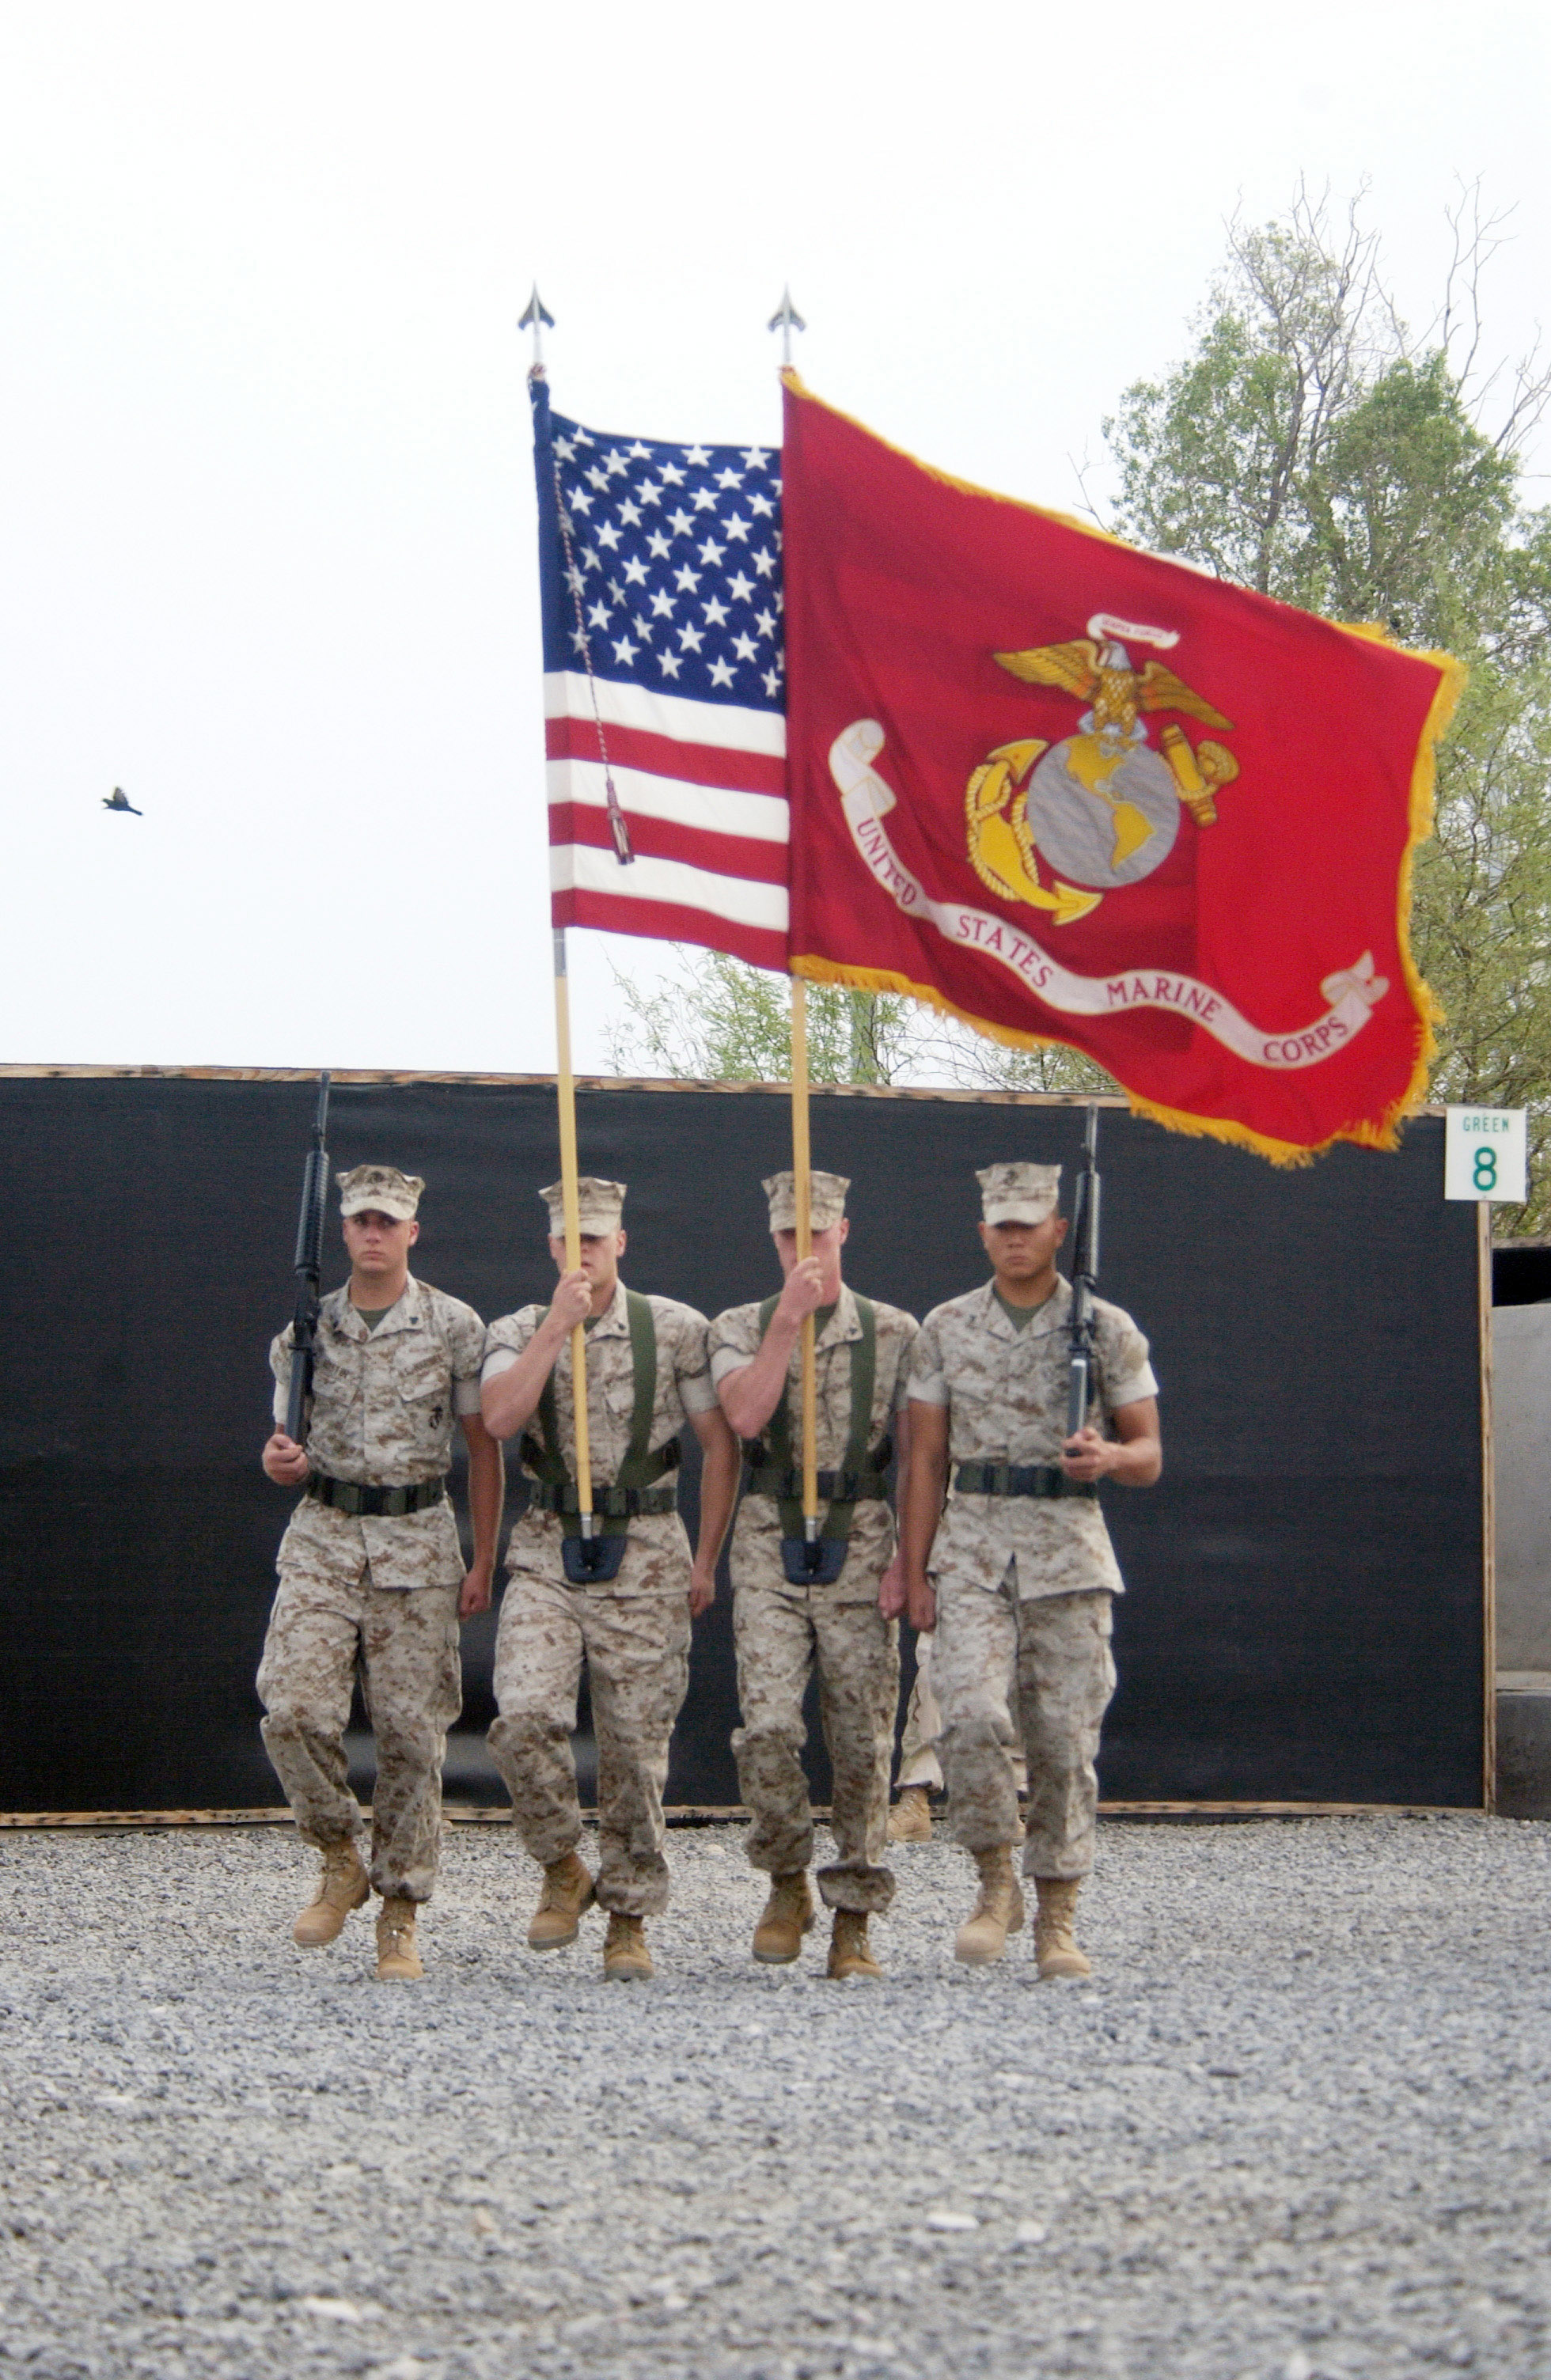 File:US Navy 060701-N-0411D-027 A Marine Corps color guard ...